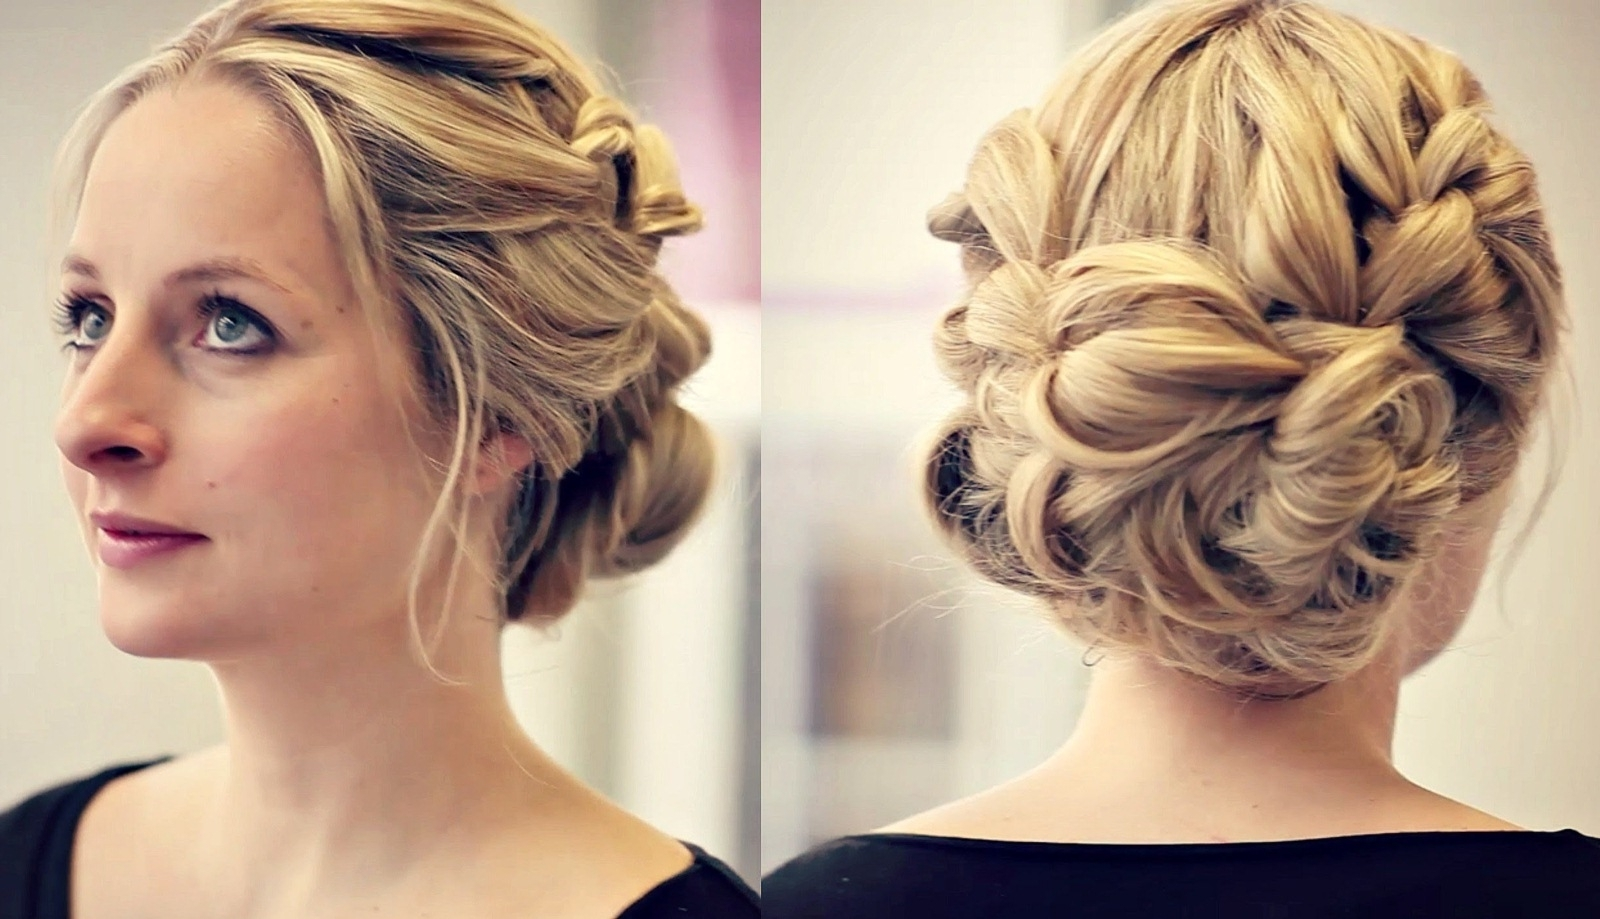 Bridal Hairstyles For Short Hair Updos | Trend Hairstyle And Haircut Regarding Bridesmaid Hairstyles Updos For Short Hair (View 6 of 15)